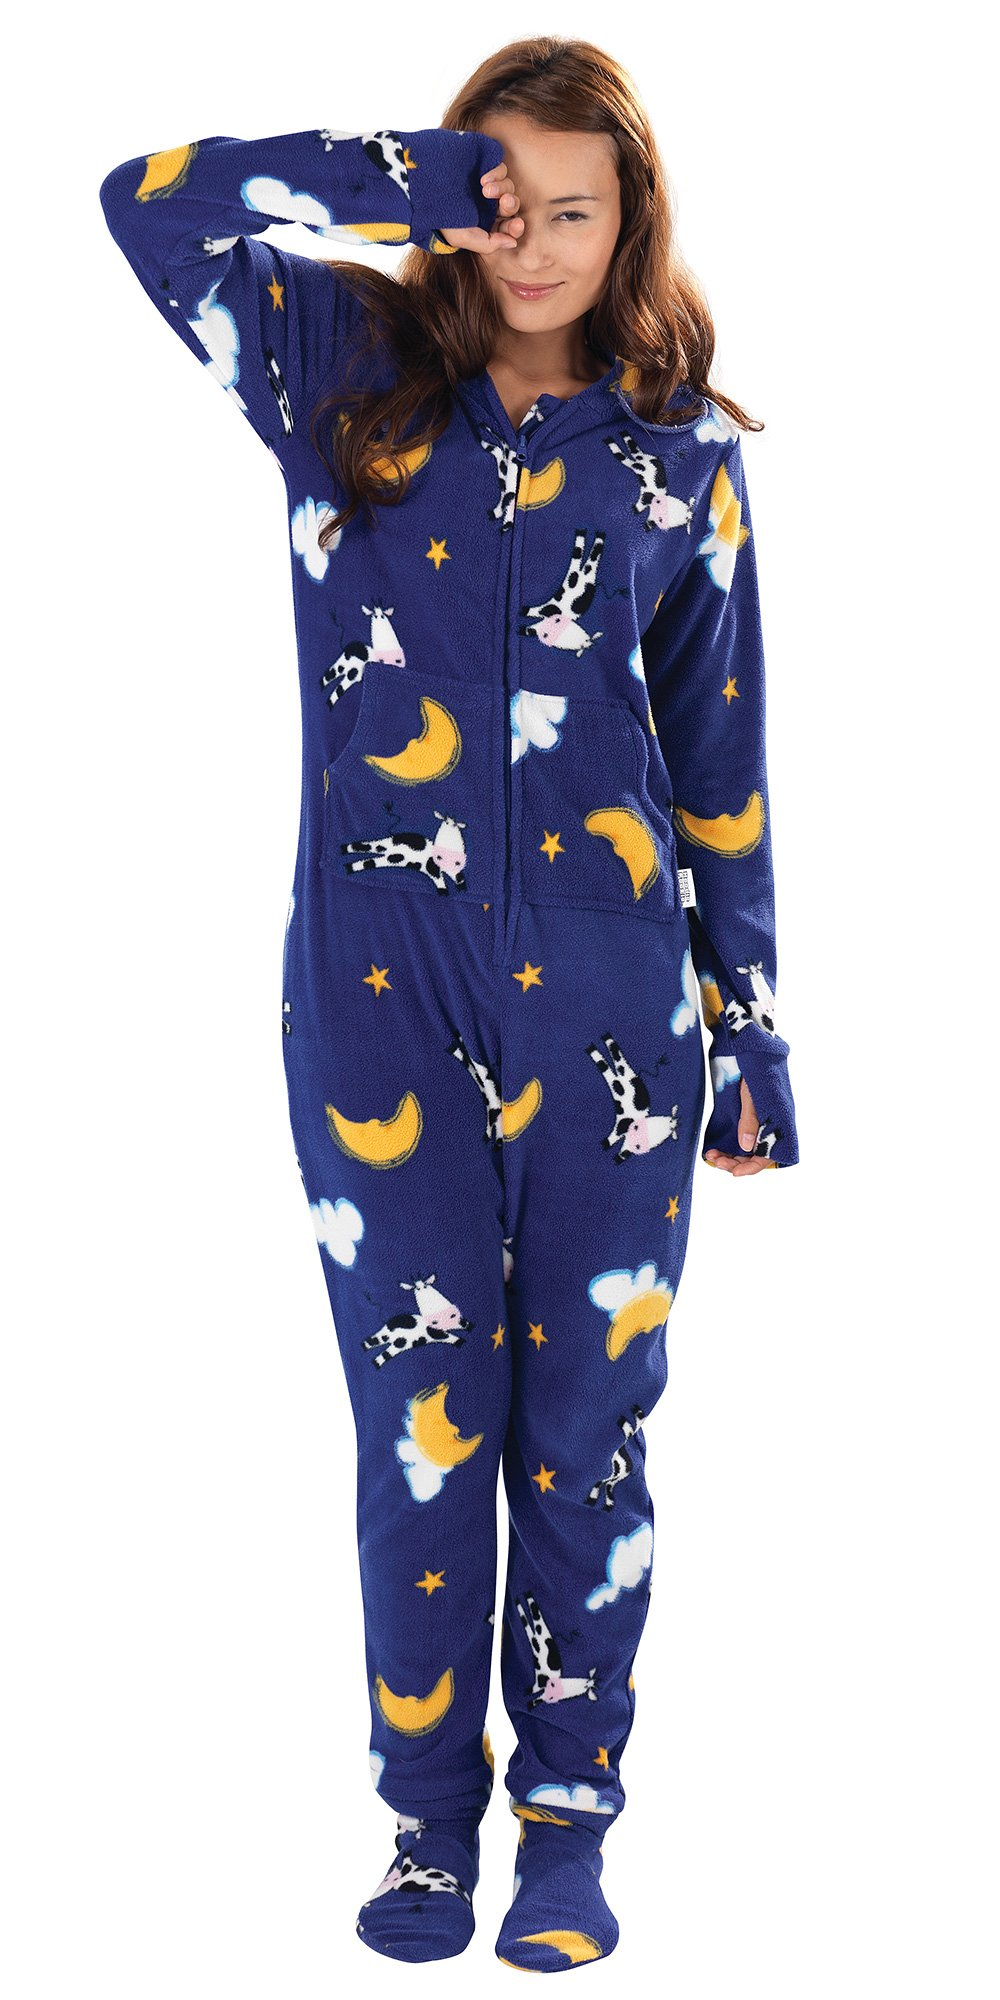 Blue Fleece Hooded Onsie Footed Pajamas for Women - Moons & Cows